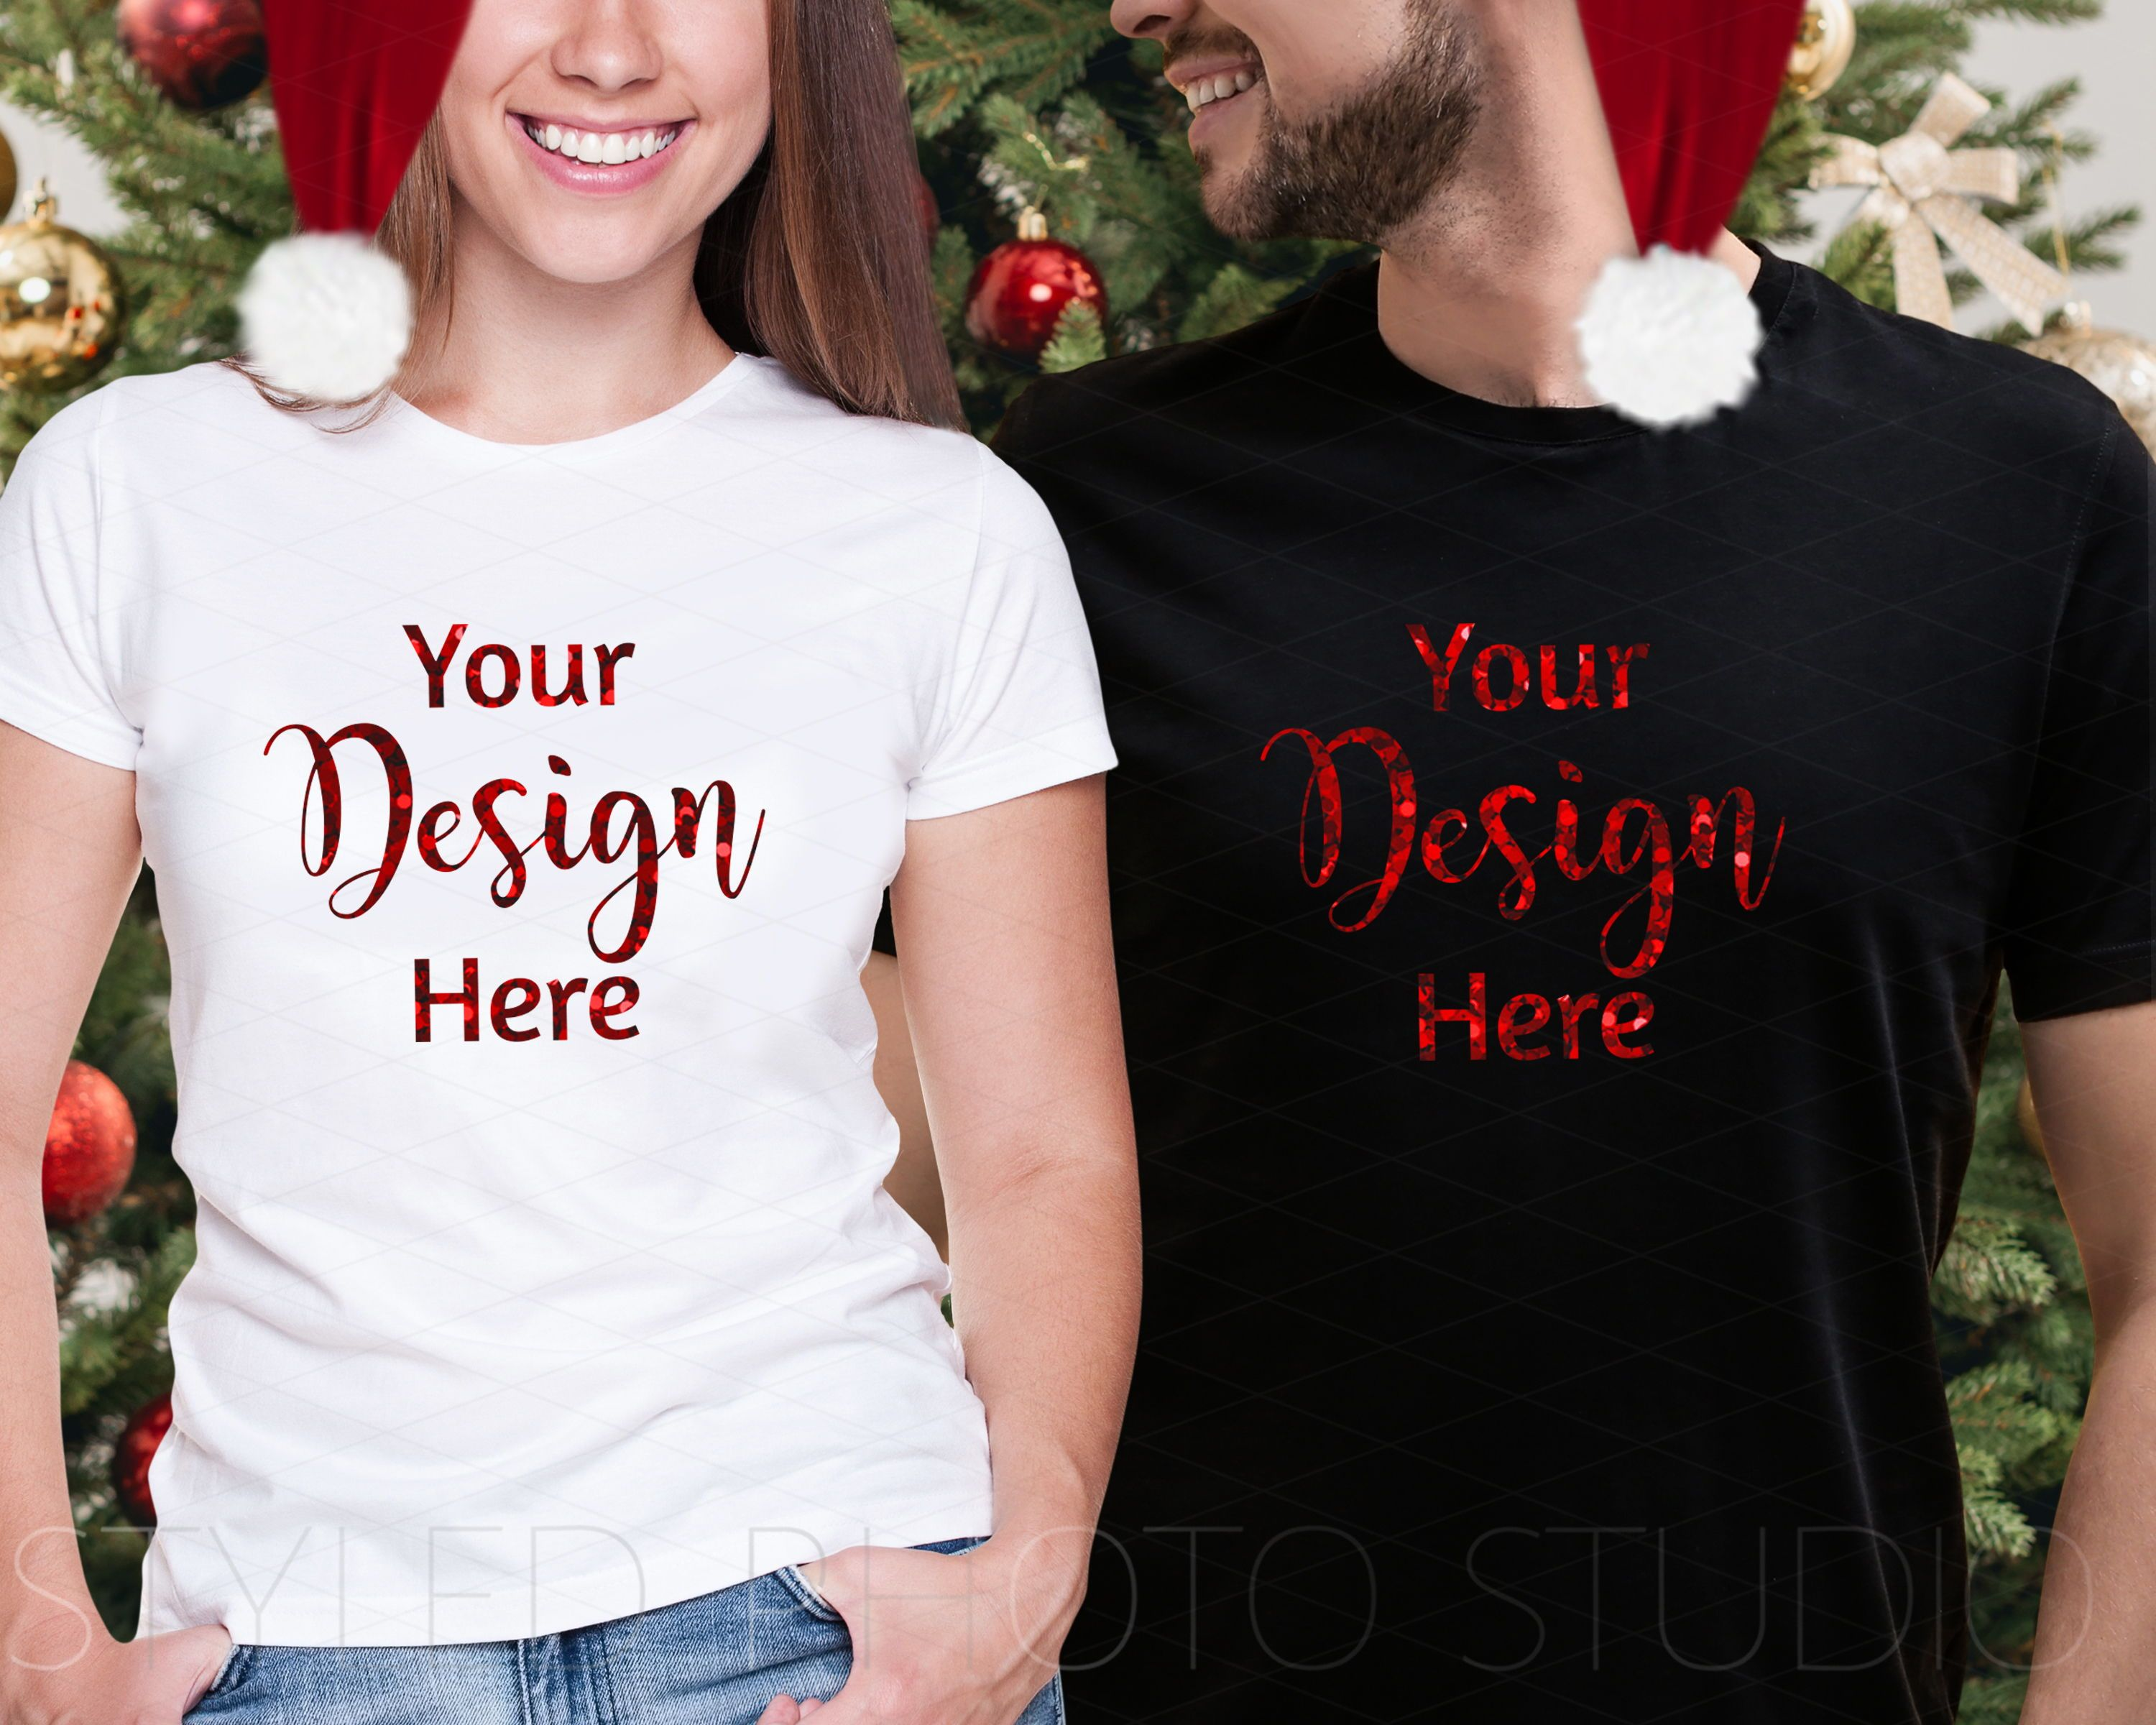 Download Tshirt Mockup Black And White For Him And Her Shirt Mockup Shirt Template T Shirts For Women